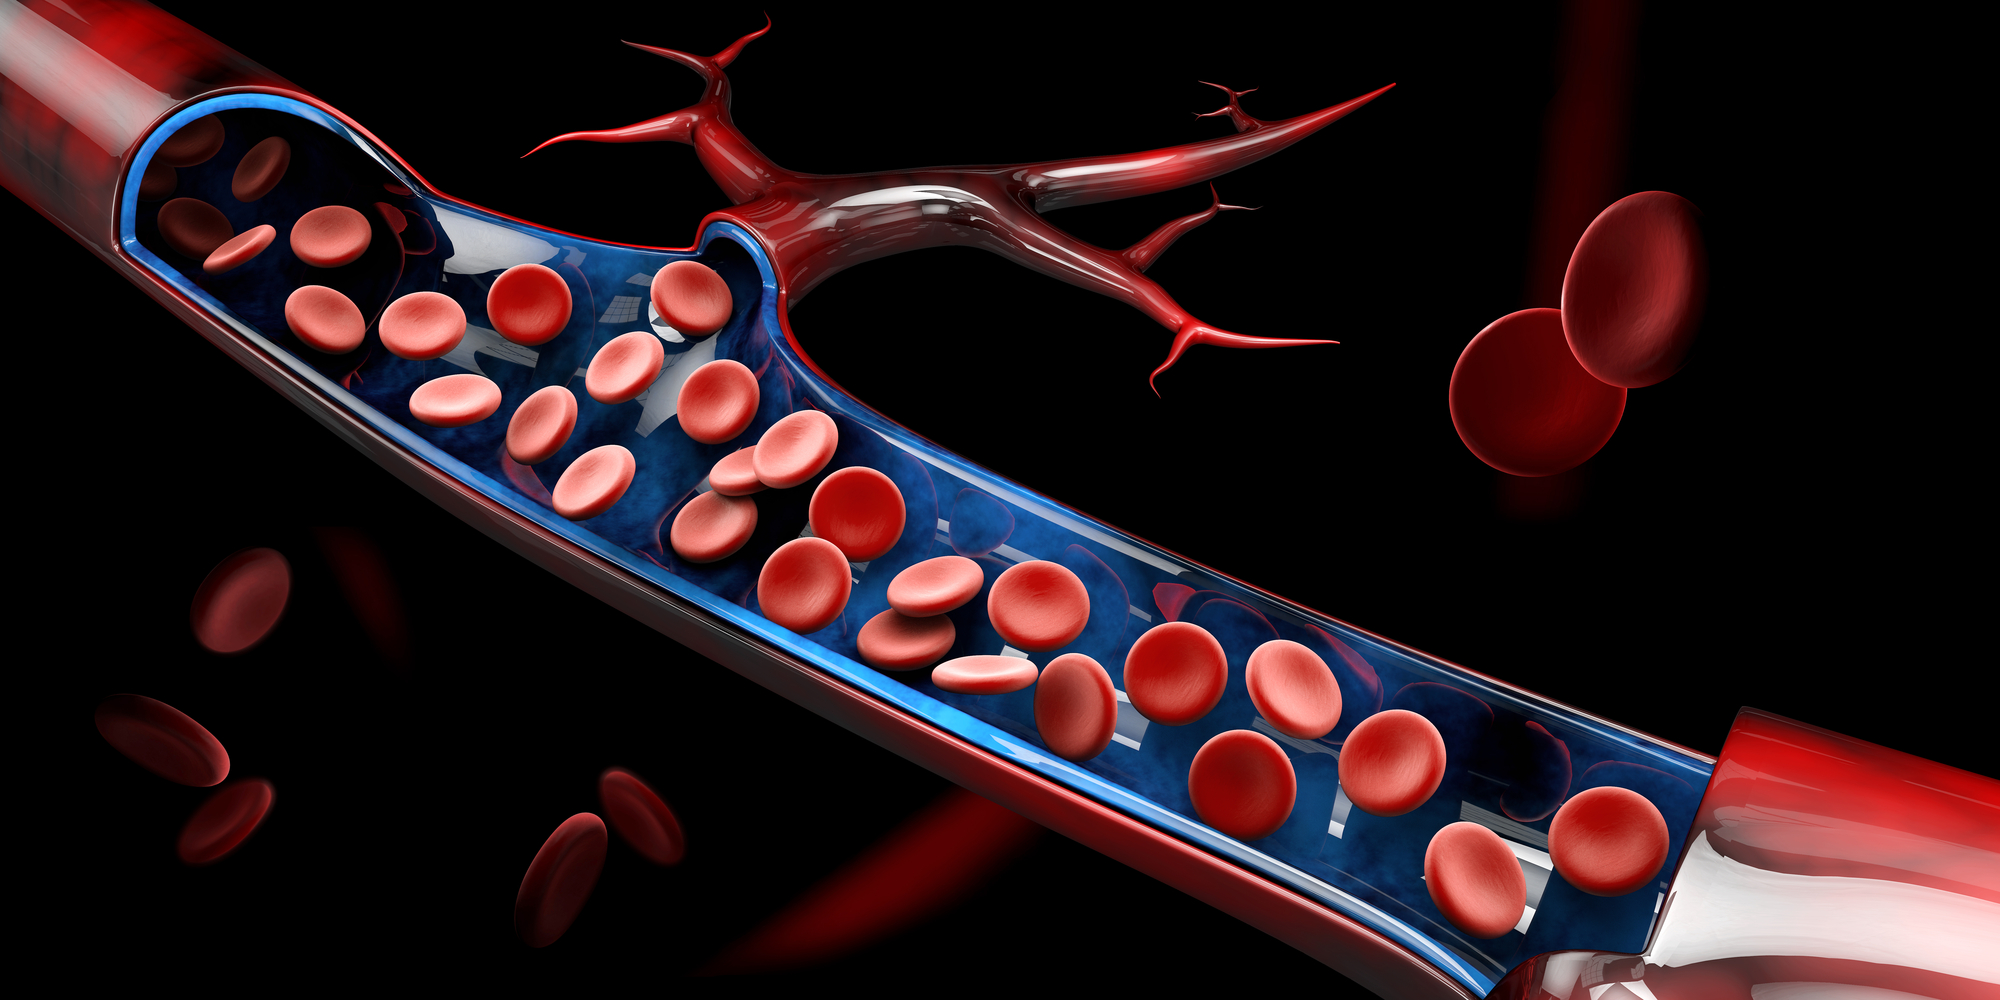 Unexpected new component discovered circulating in bloodstream